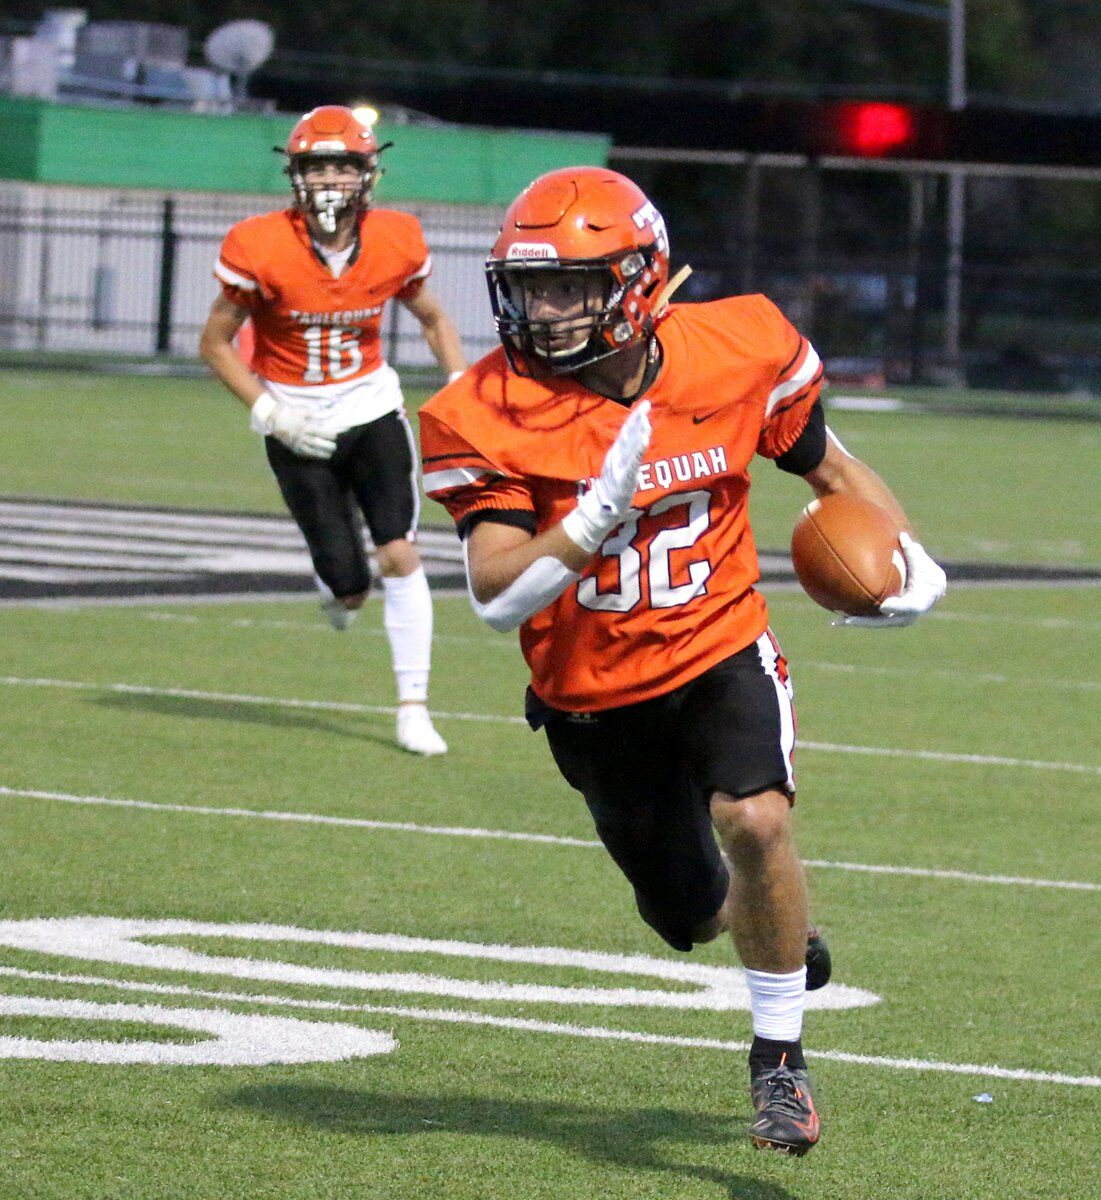 BACK ON THE ROAD: Tigers travel to Sapulpa Friday